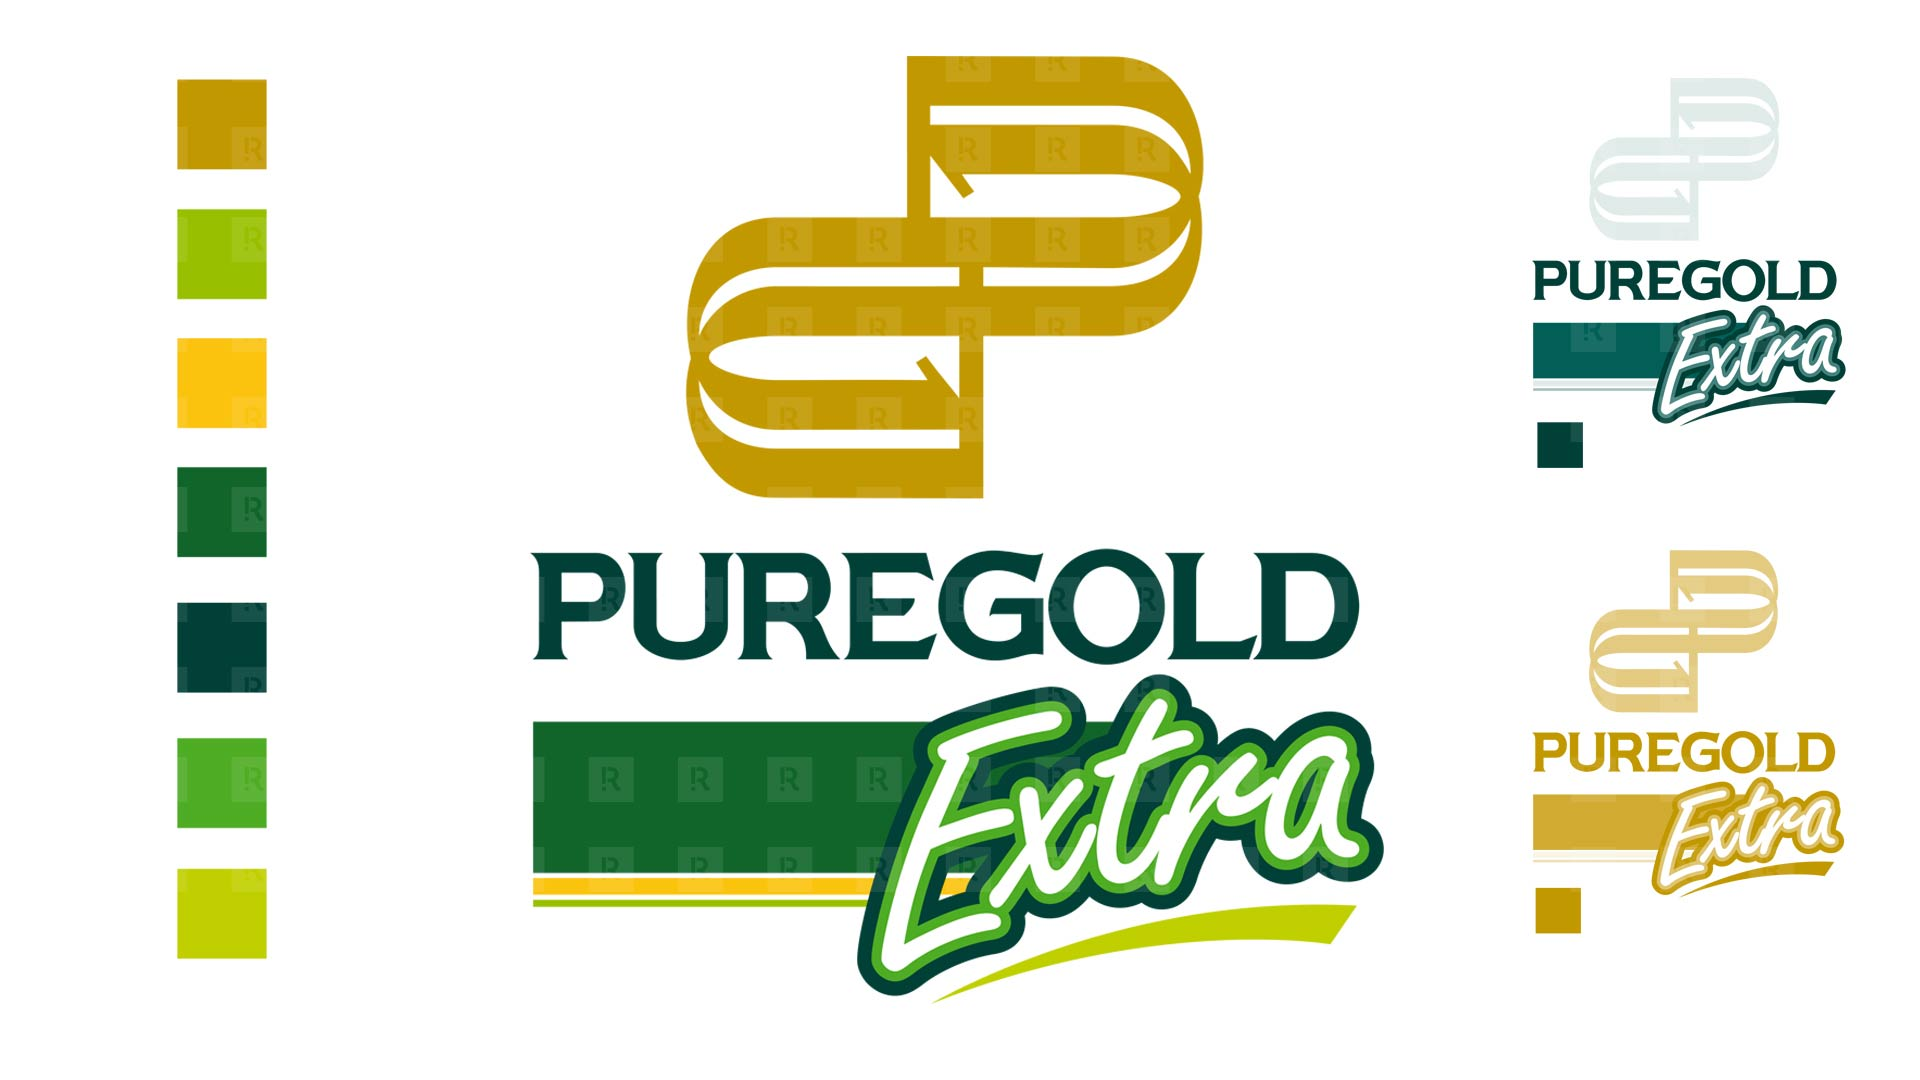 Puregold Extra Corporate Identity